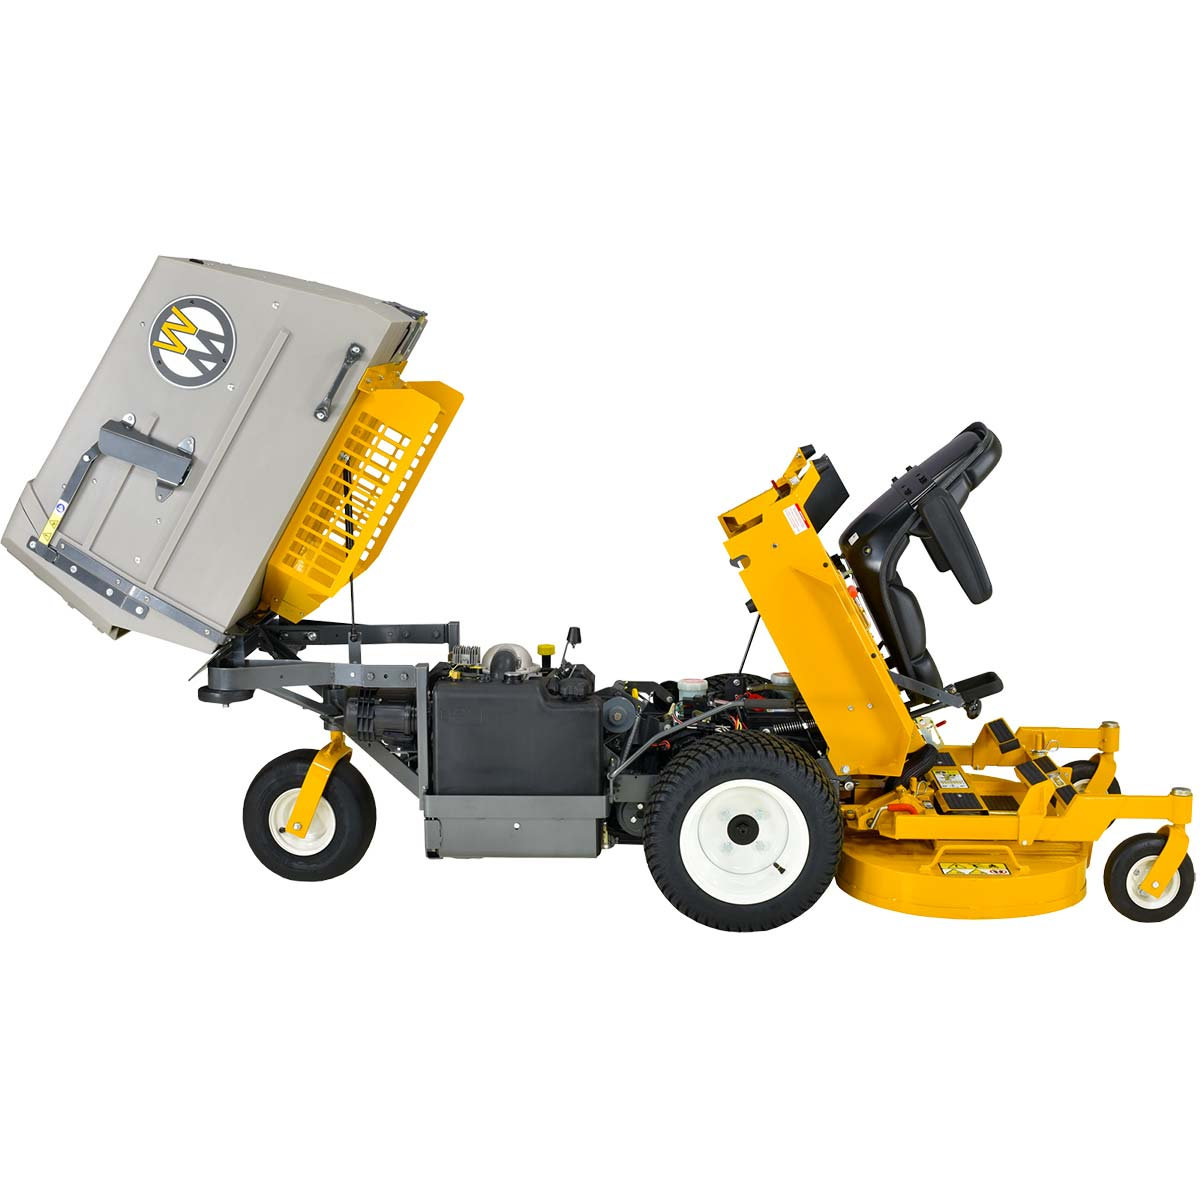 Walker MC19 with body tilted for cleaning and maintenance